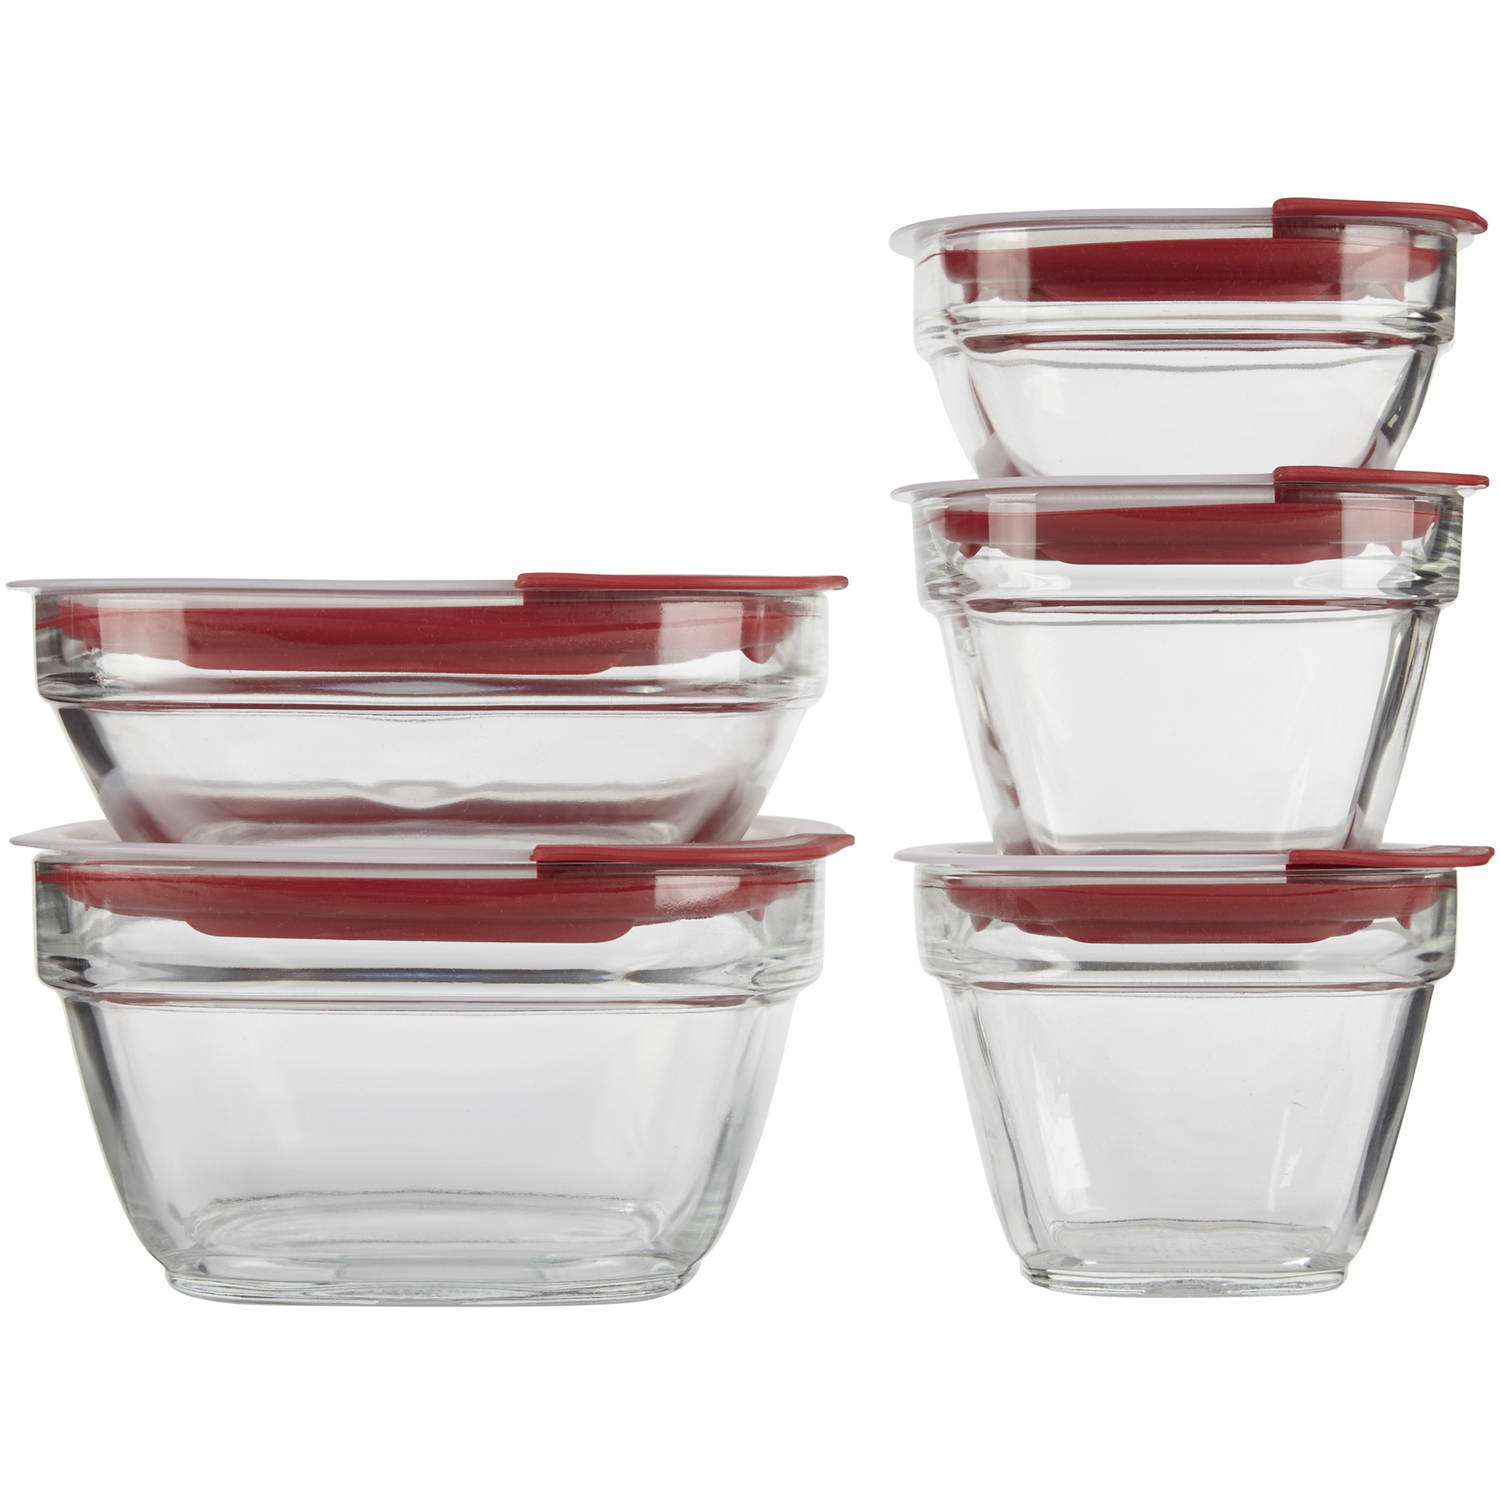 Rubbermaid Glass with Easy Find Lids 10-Piece Set, Red